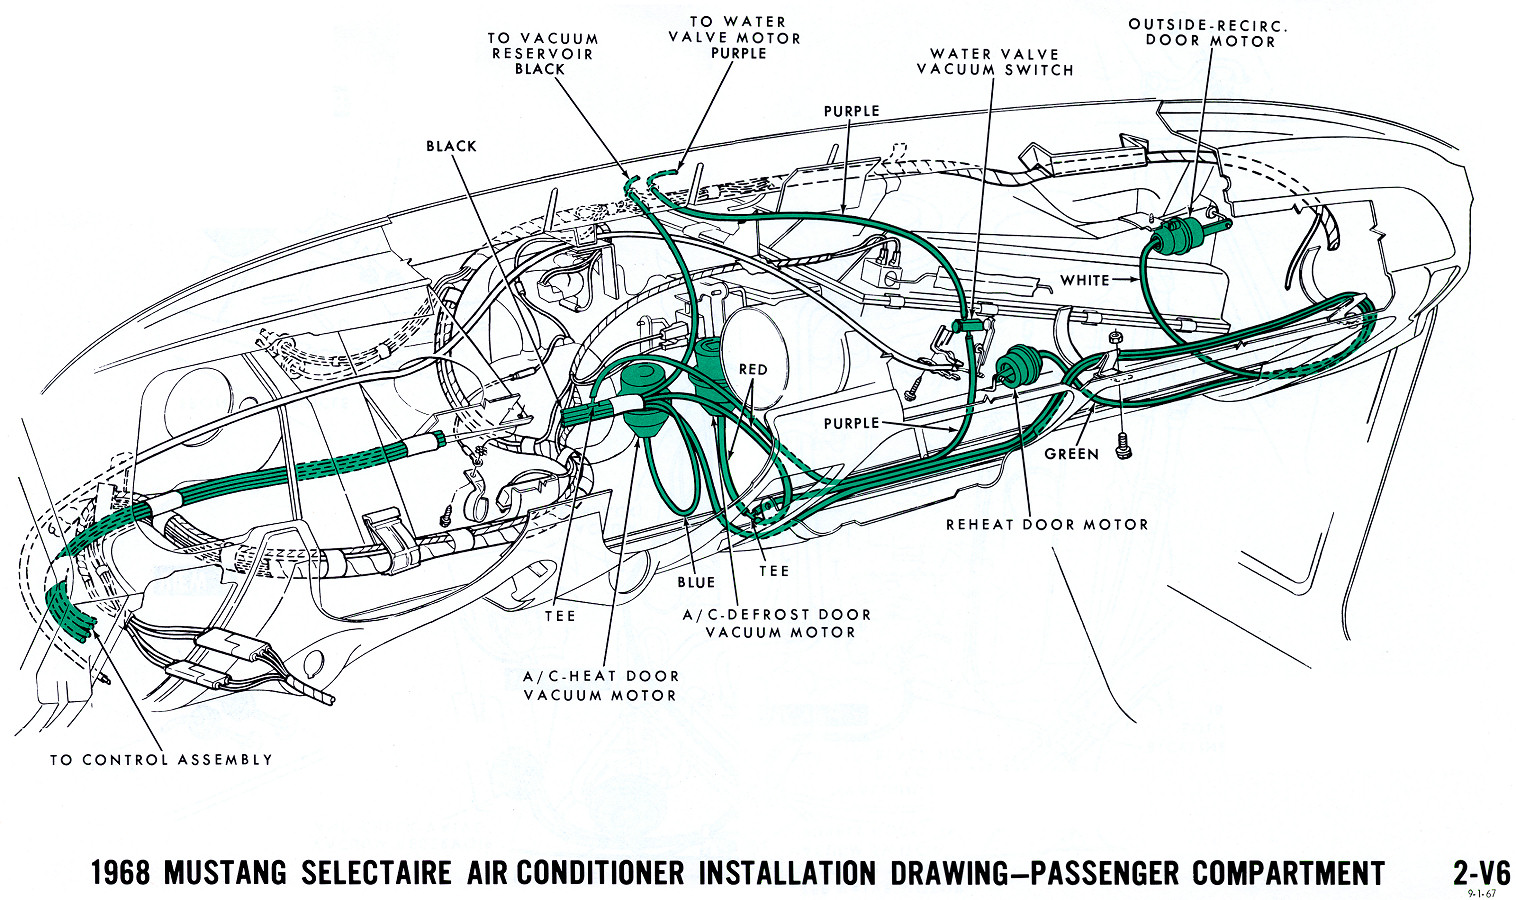 1968 Mustang Wiring Diagrams And Vacuum Schematics Average Joe Wiper Washer Motor Diagram For 68 Camaro Repalcement Air Conditioning Interior